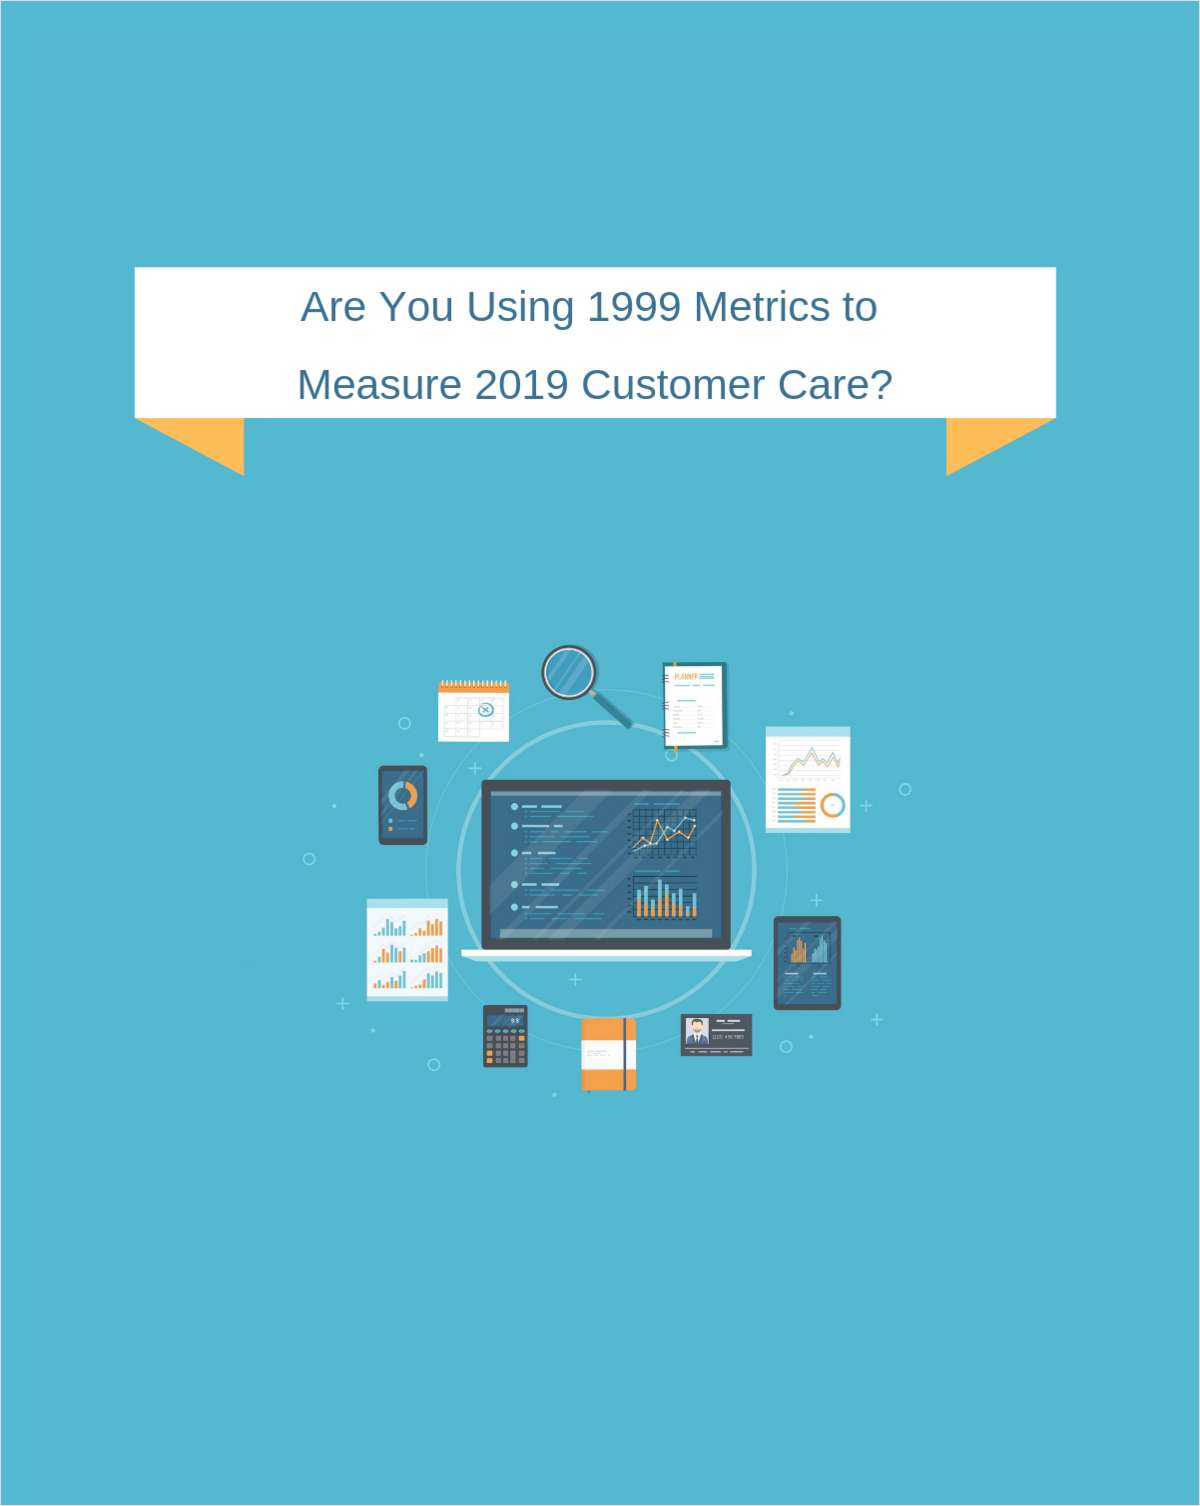 Are You Using 1999 Metrics to Measure 2019 Customer Care?